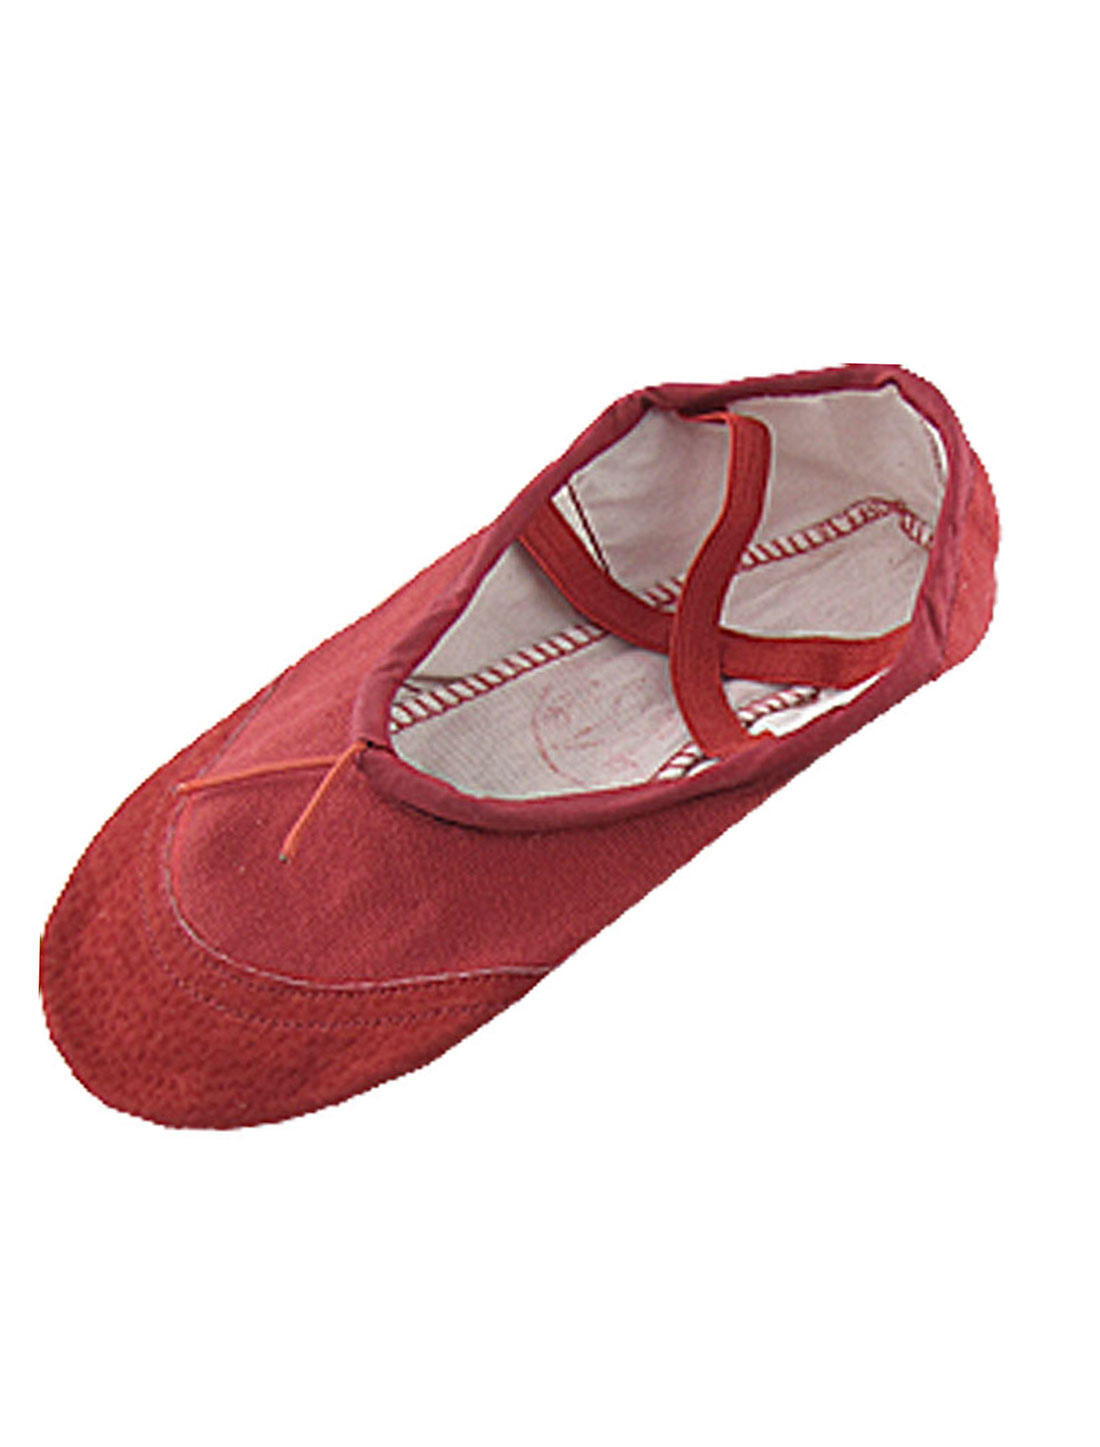 Girls Gymnastics US Size 1 Dancing Ballet Red Soft Canvas Flat Shoes